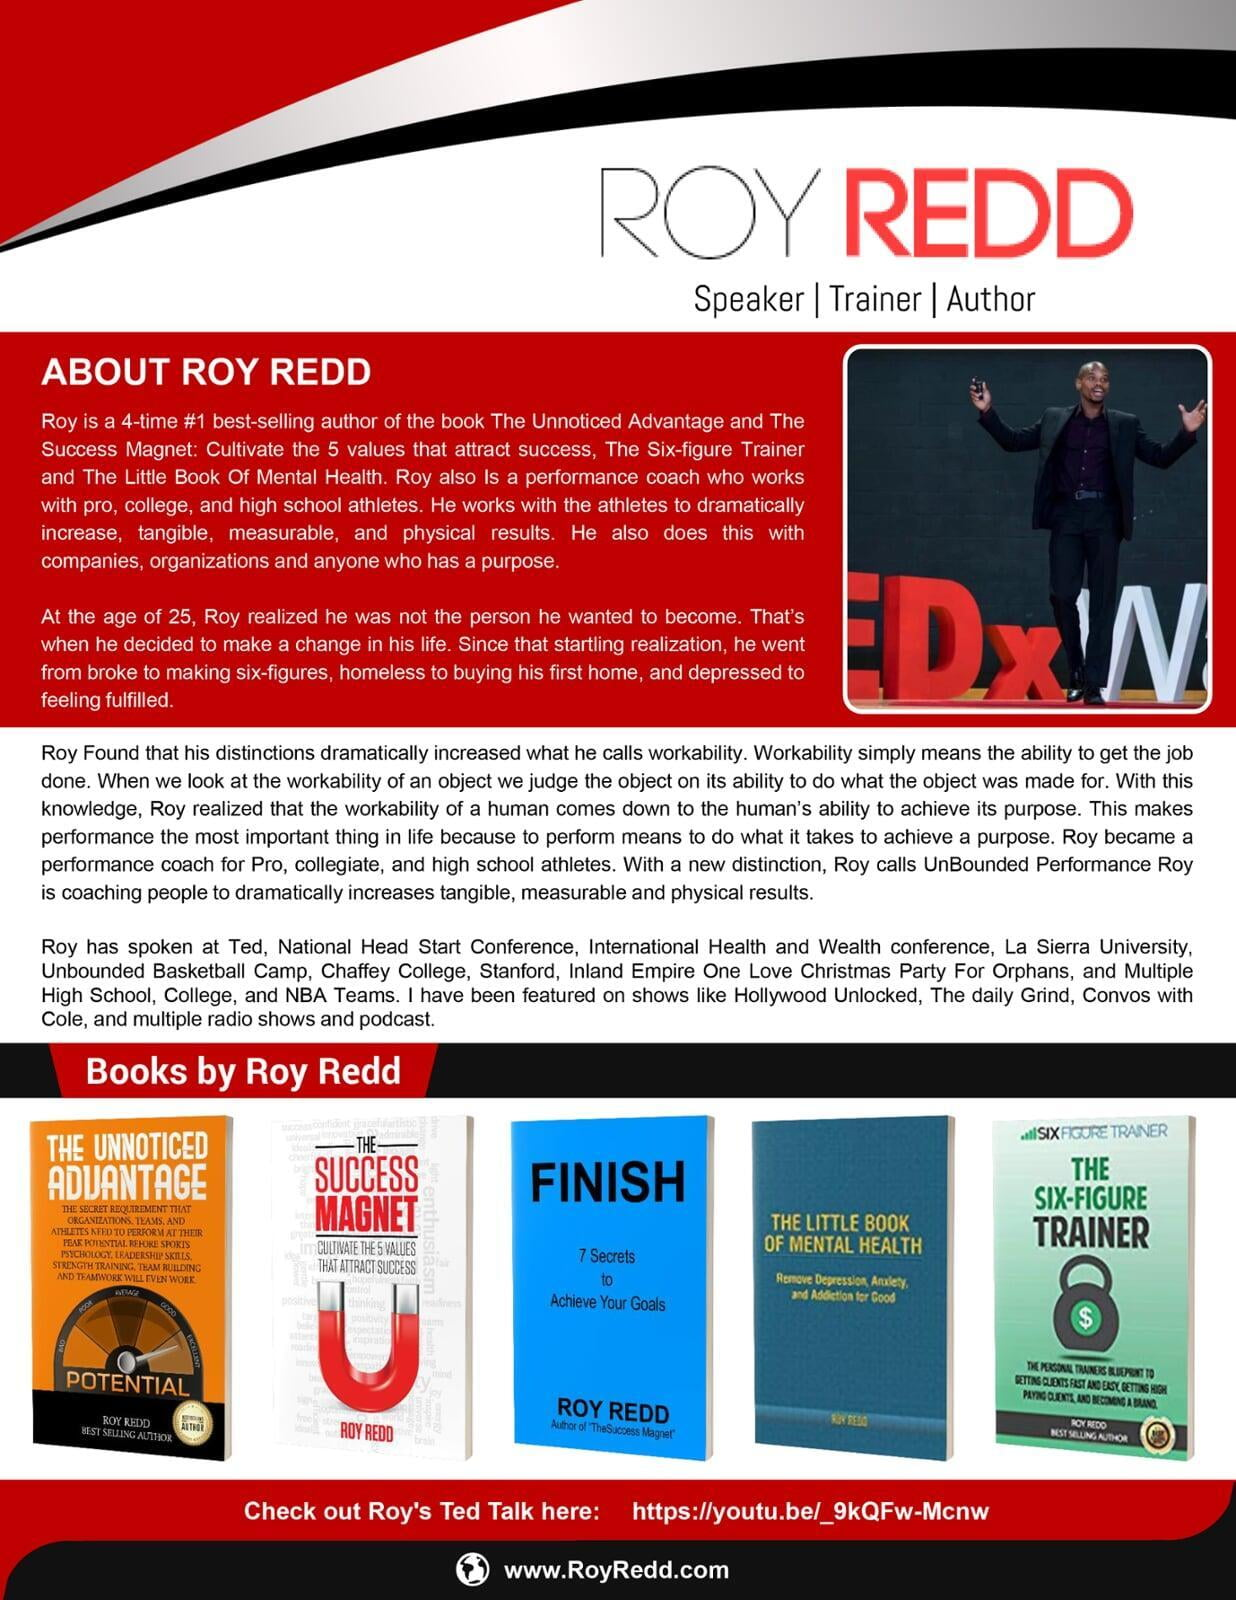 About Roy Redd